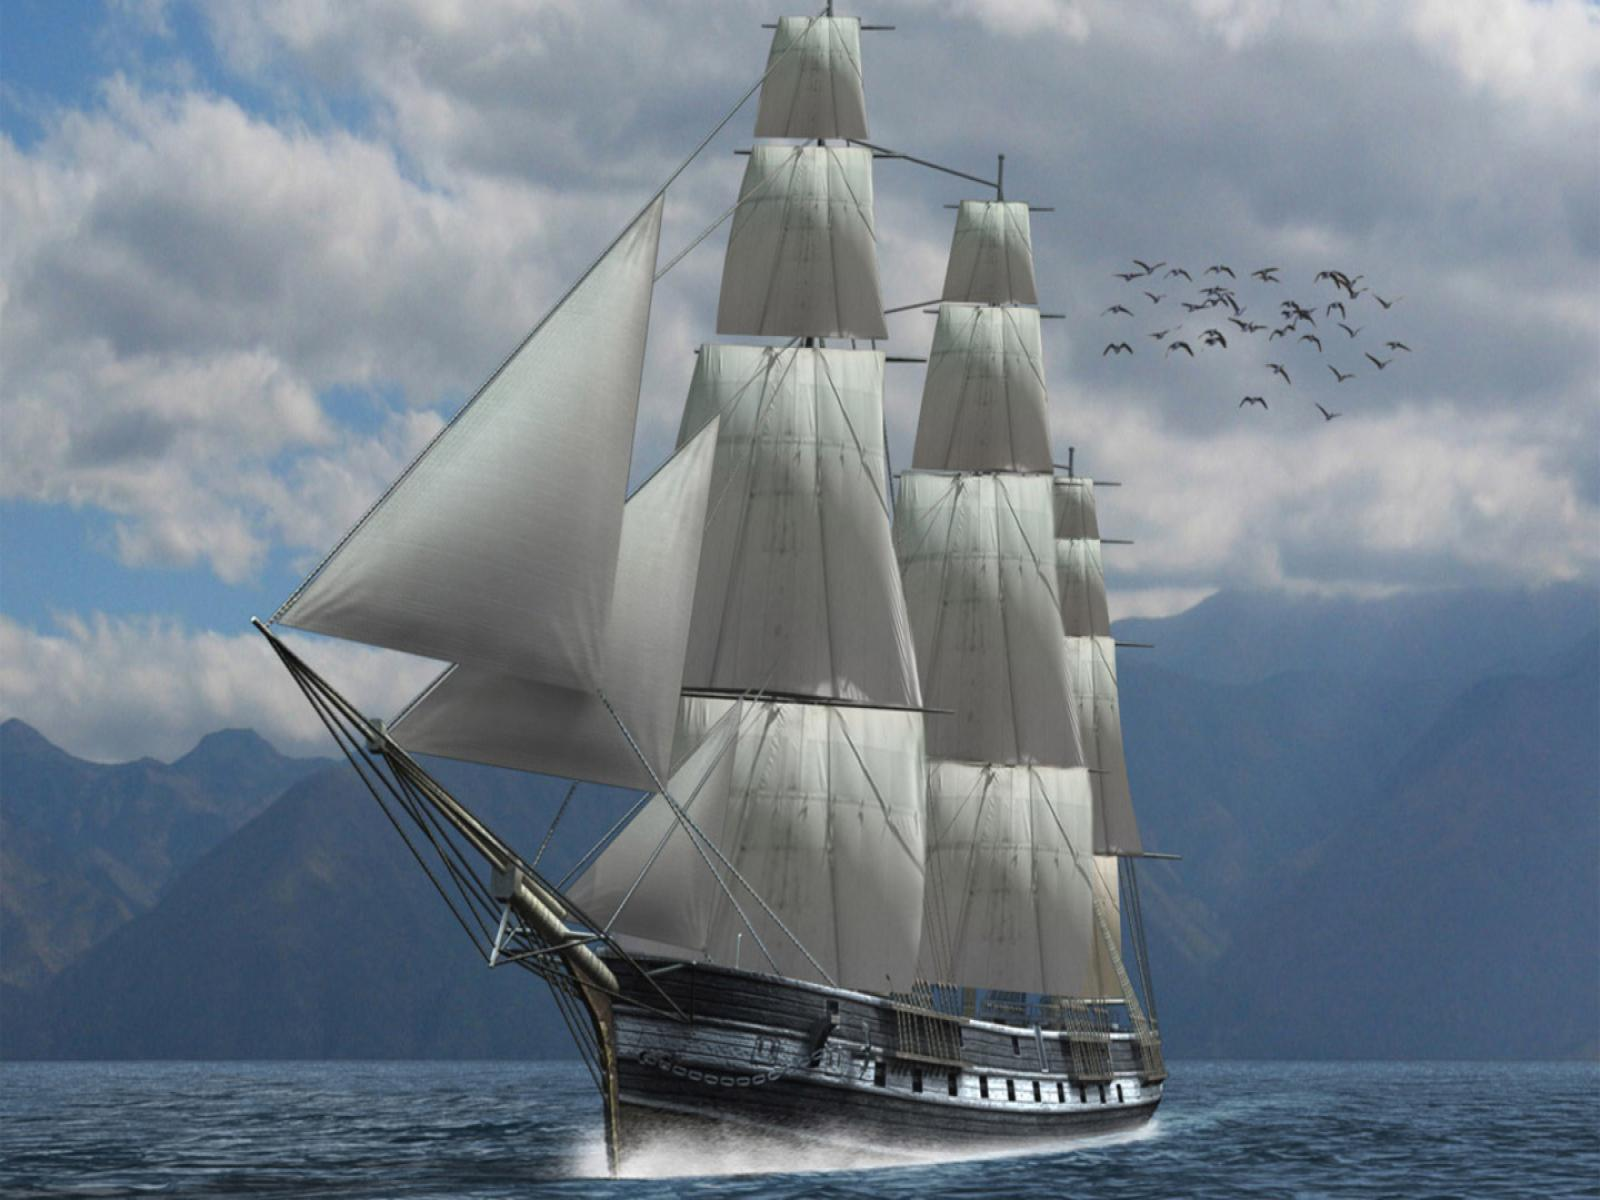 HD Sailing Ship 1440×900 – Download FREE Widescreen HD Sailing Ship Wallpaper